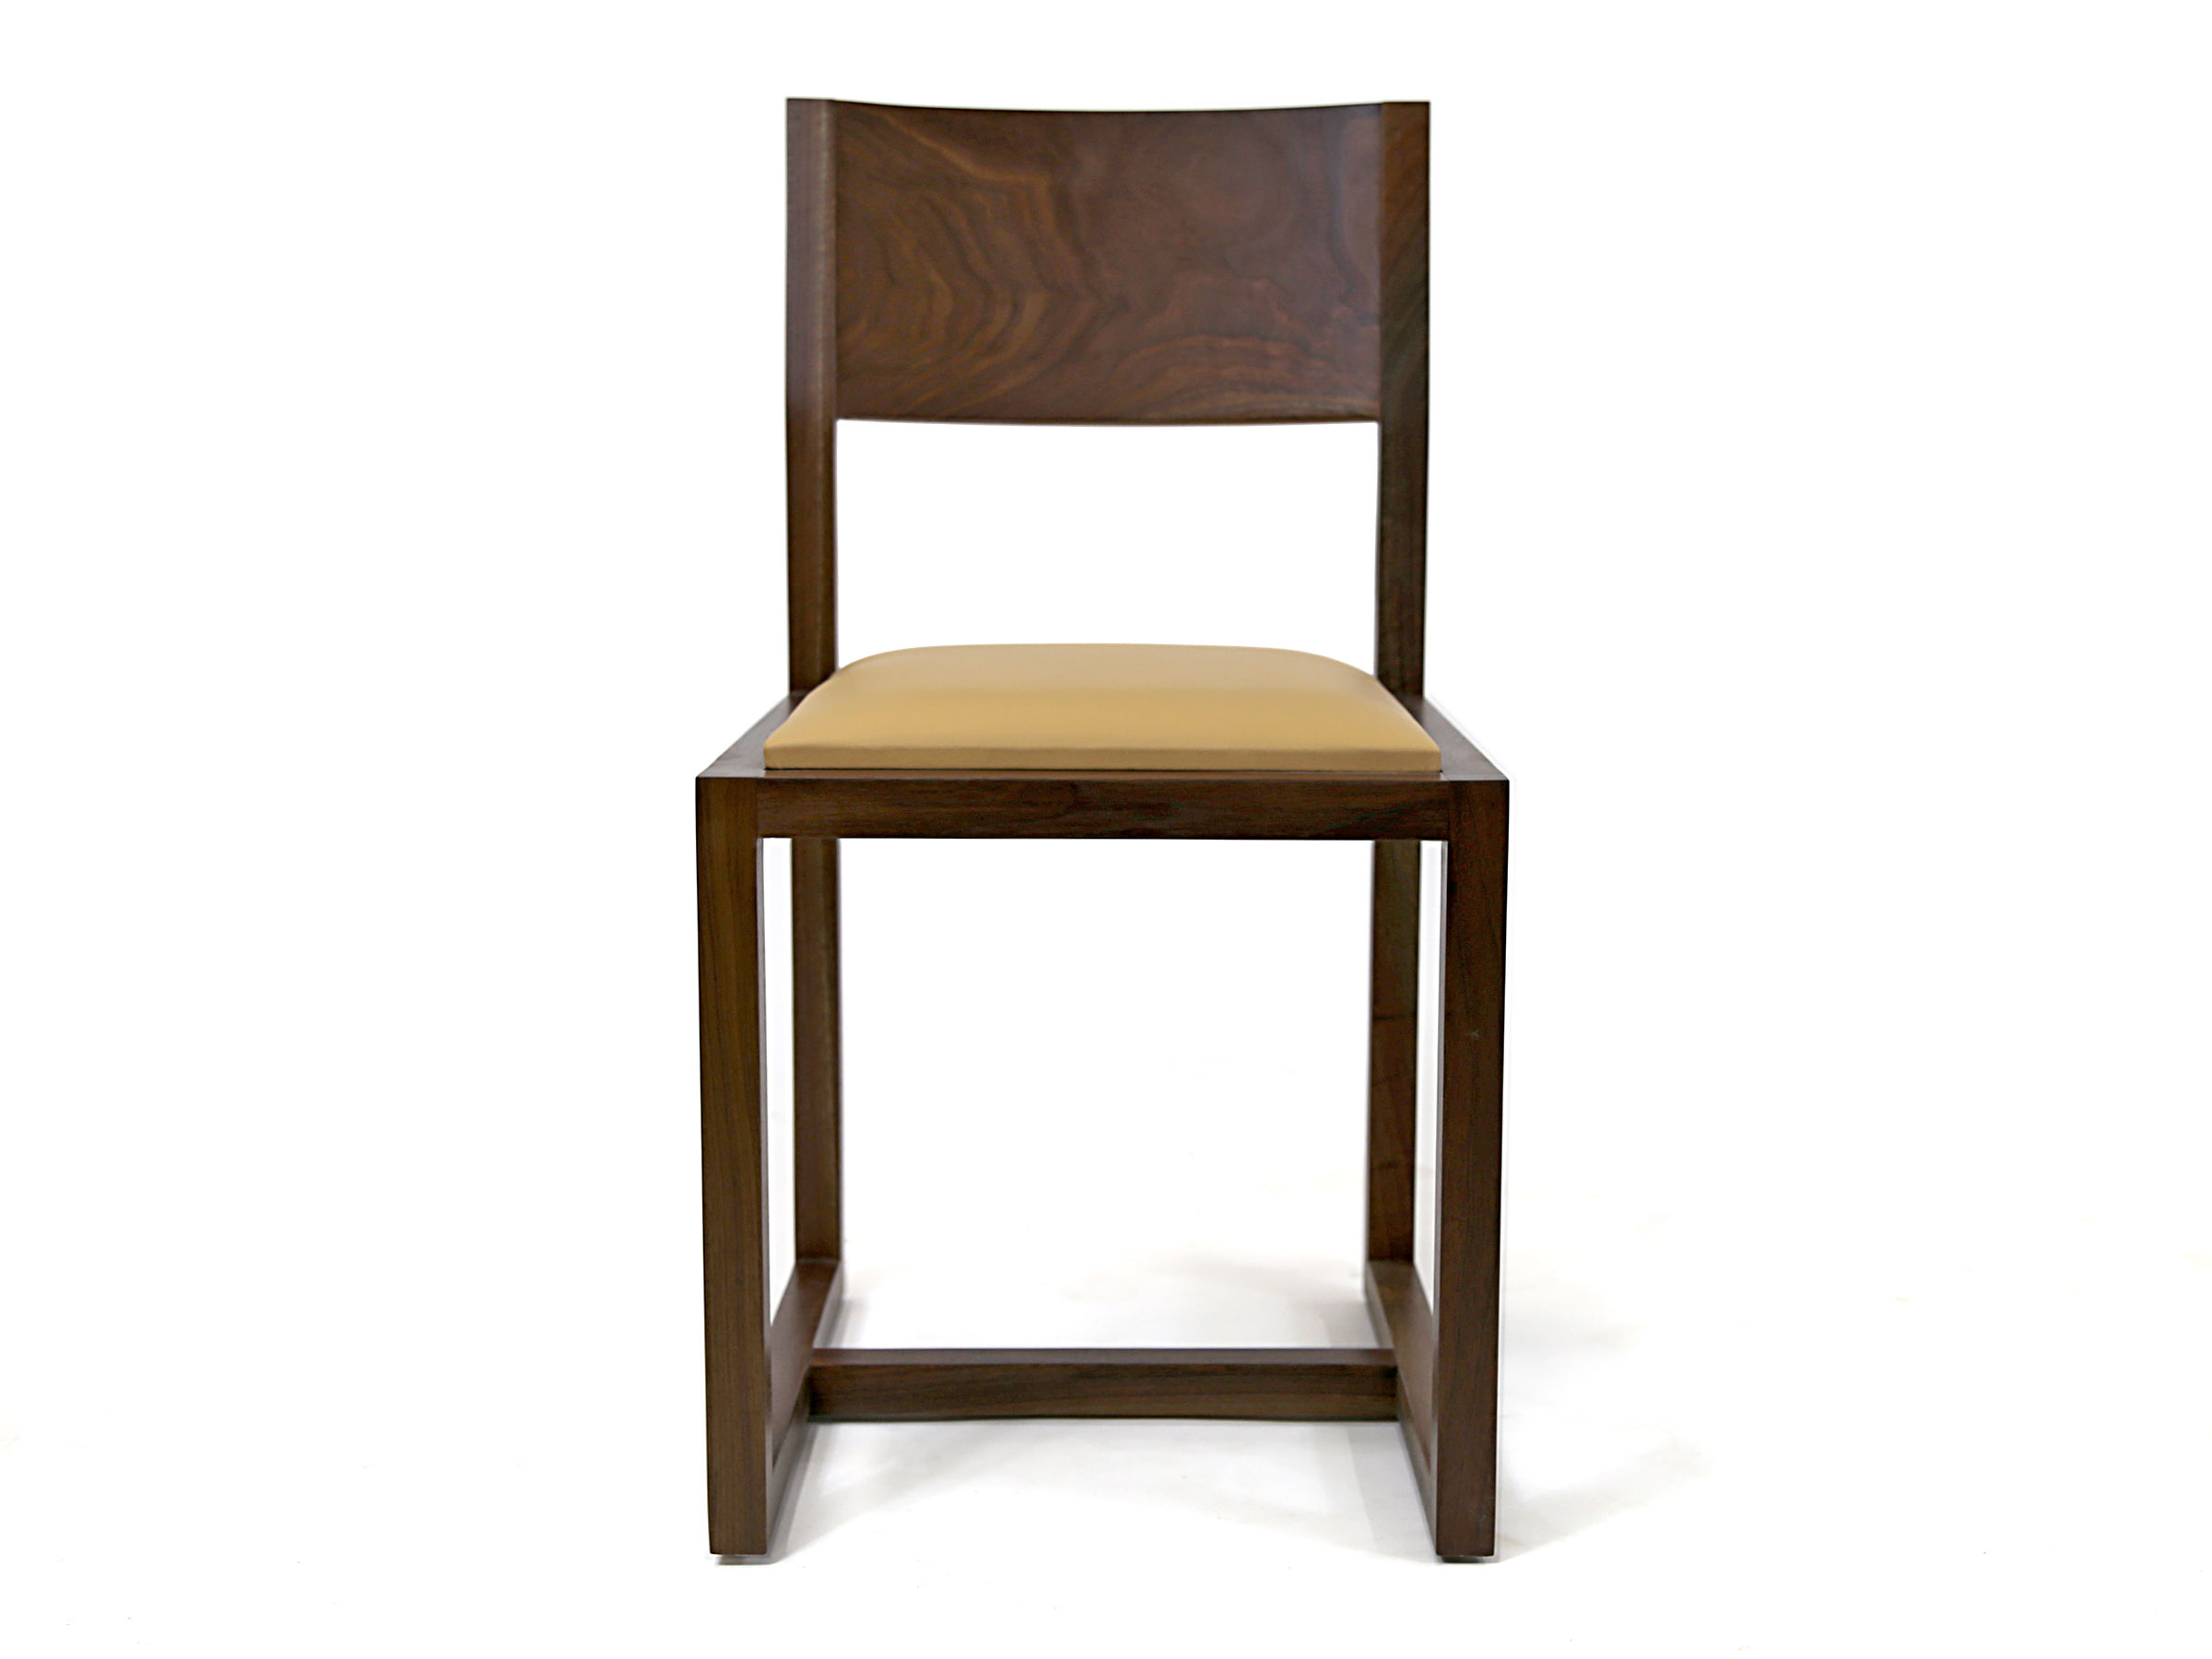 SHIMNA St. Lawrence Chair